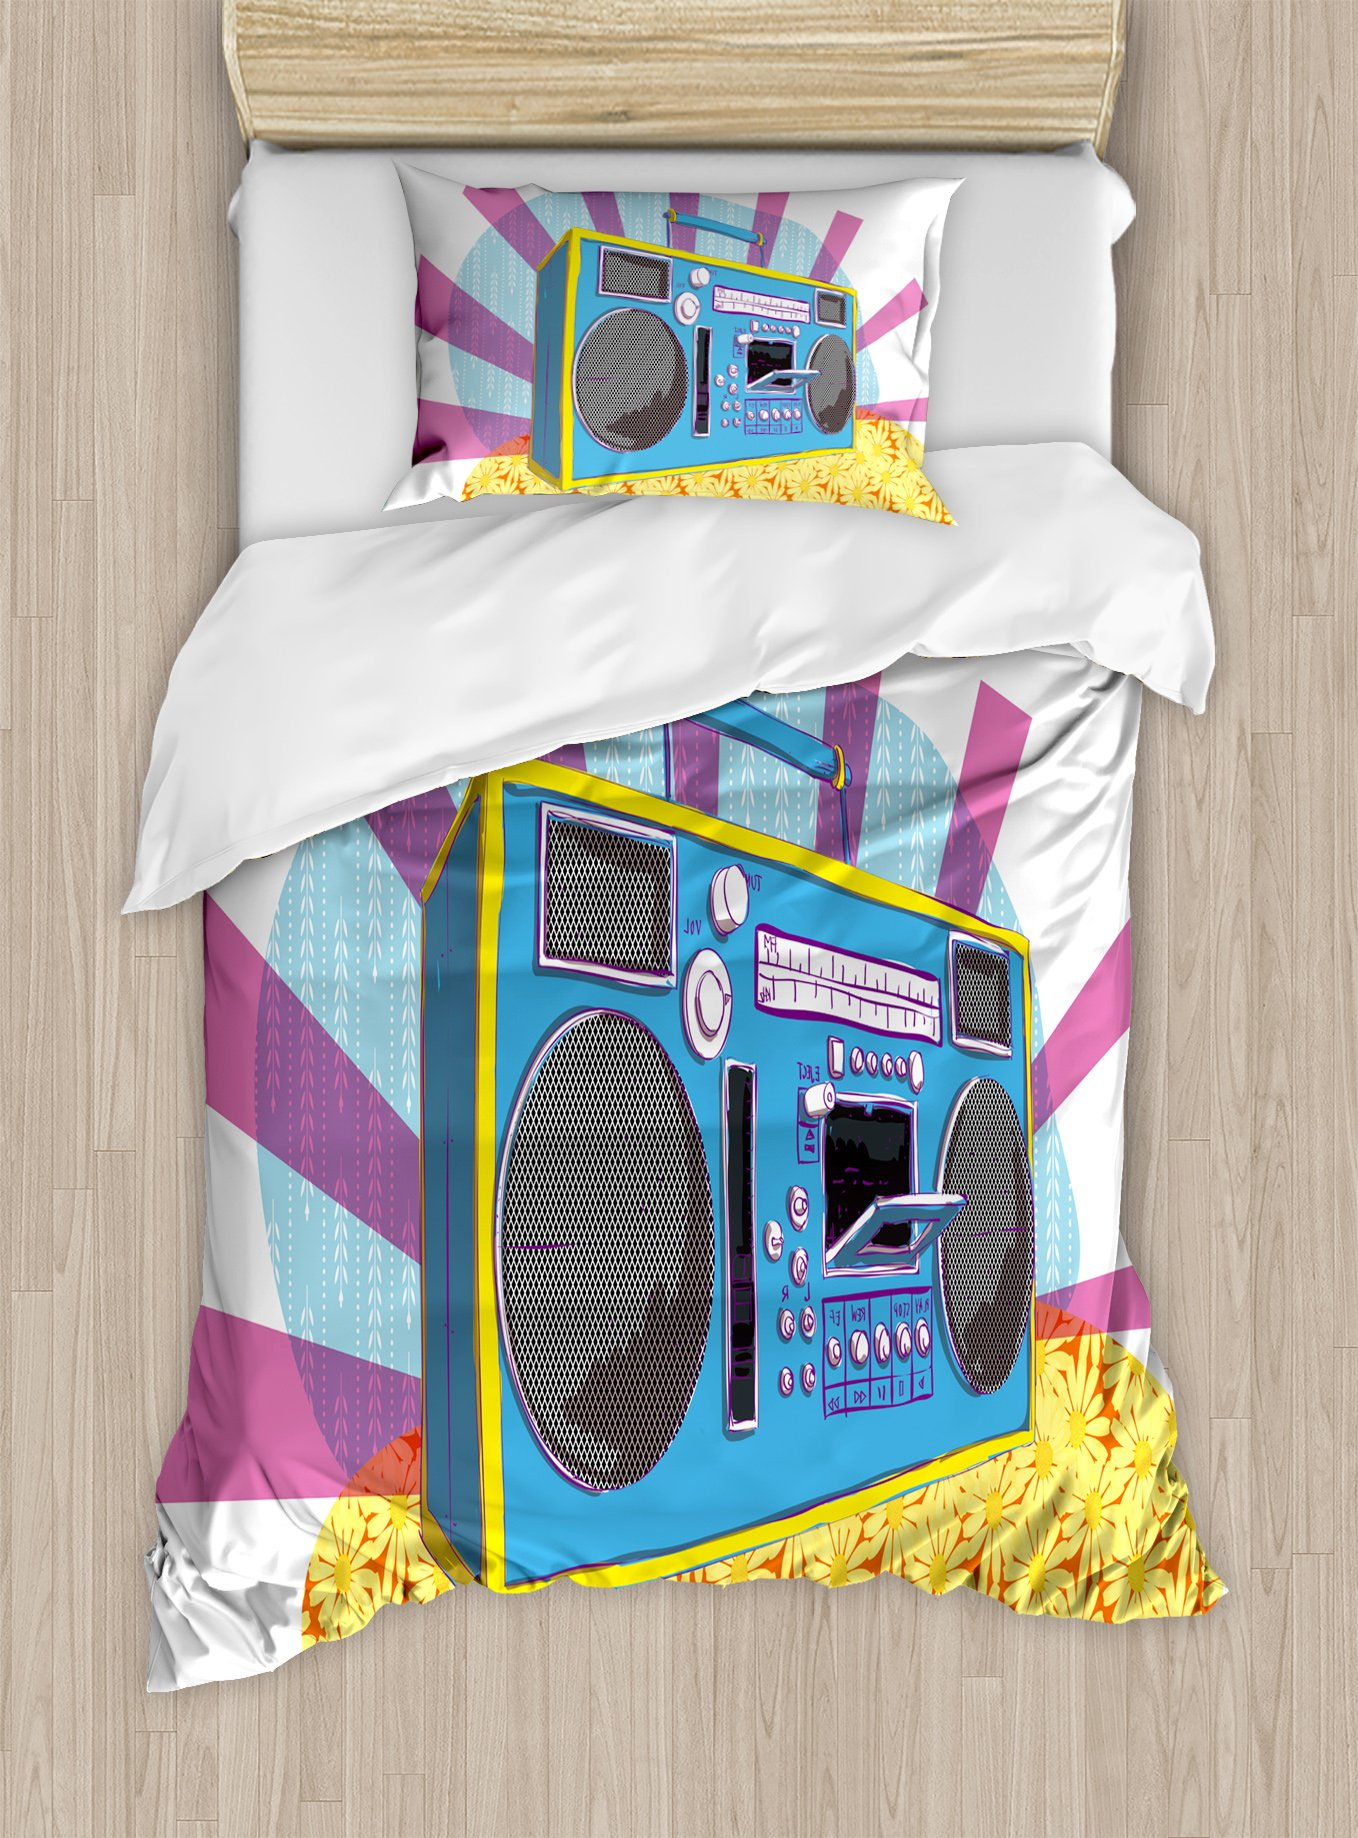 Ambesonne 70s Party Duvet Cover Set Twin Size, Retro Boom Box in Pop Art Manner Dance Music Colorful Composition Artwork Print, Decorative 2 Piece Bedding Set with 1 Pillow Sham, Multicolor